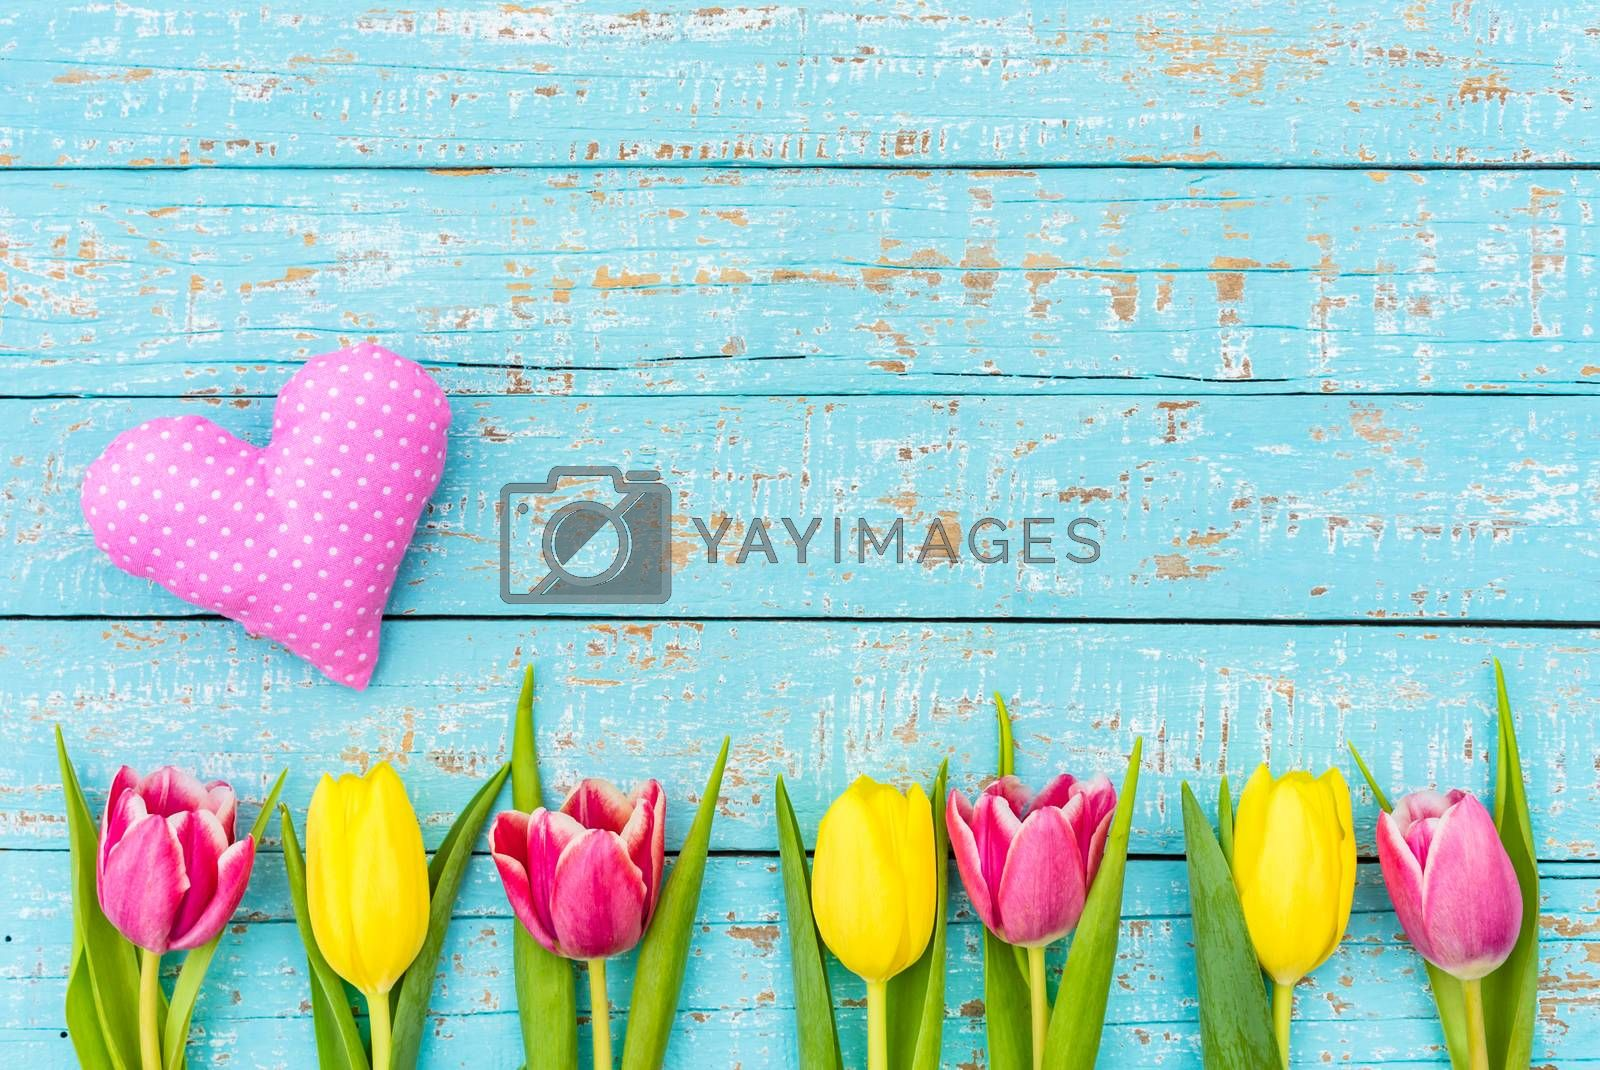 Romantic heart and tulips flowers on turquoise wooden background with copy space